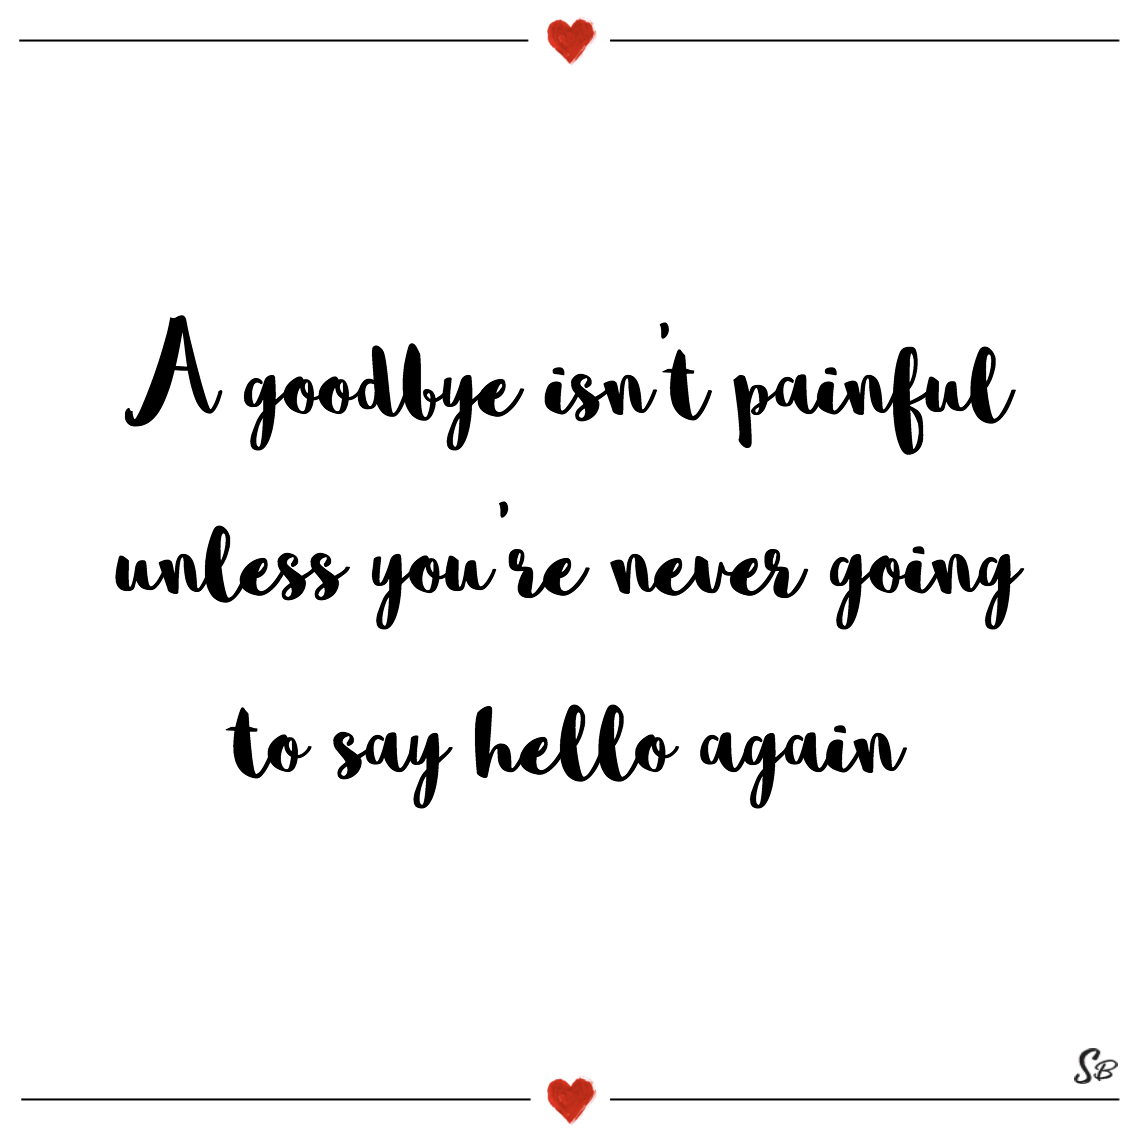 A goodbye isn't painful unless you're never going to say hello again